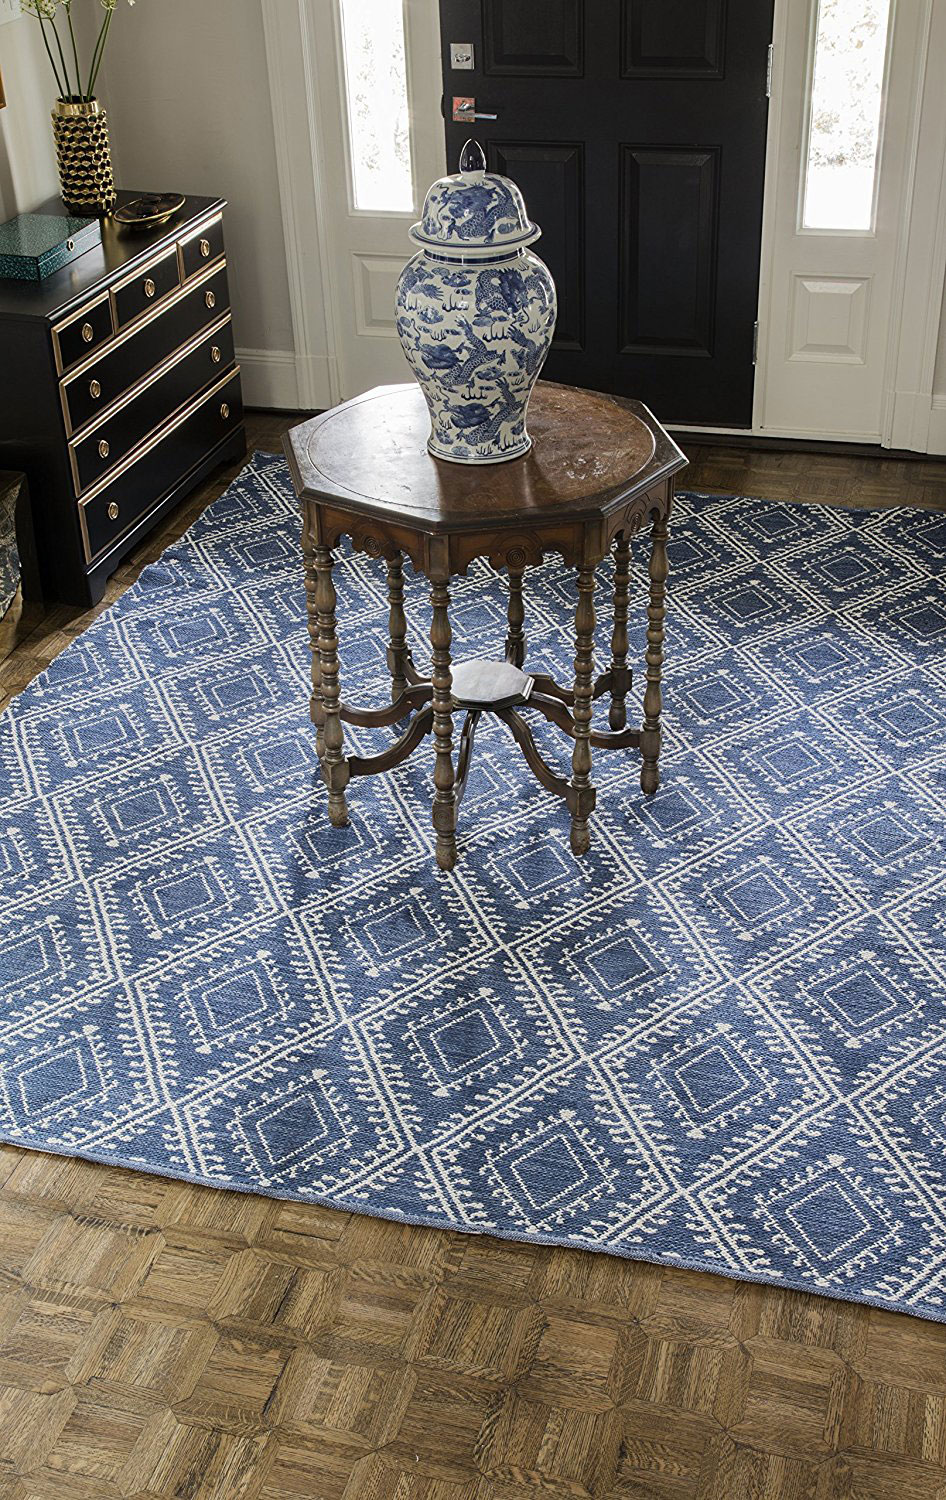 Erin Gates Easton Collection Pleasant Indoor Outdoor Hand Woven Area Rug 5' x 7'6 , Navy Blue